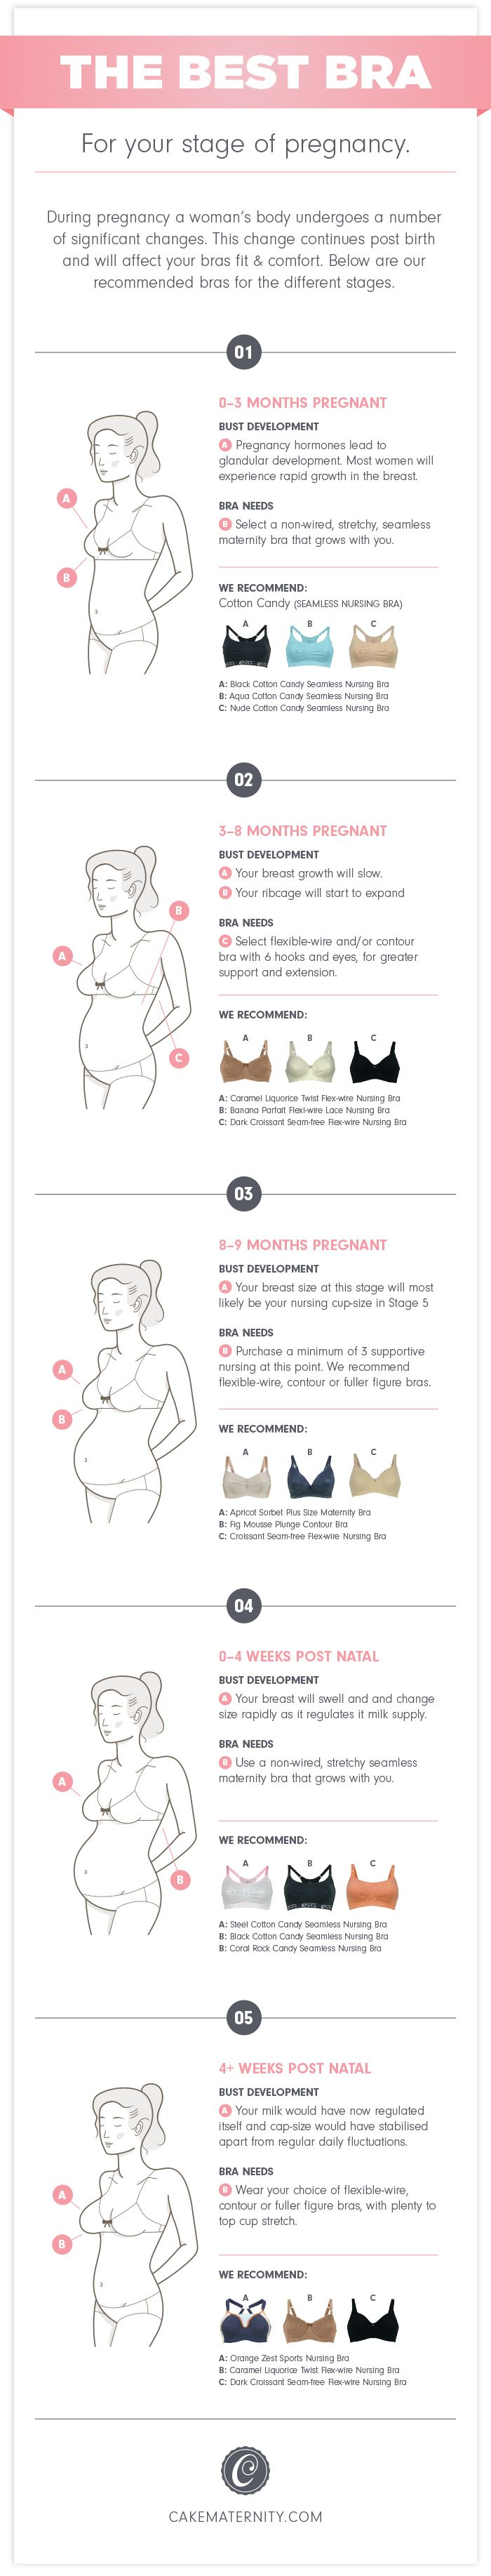 409e0c01334 ... bras-for-stages-infographic